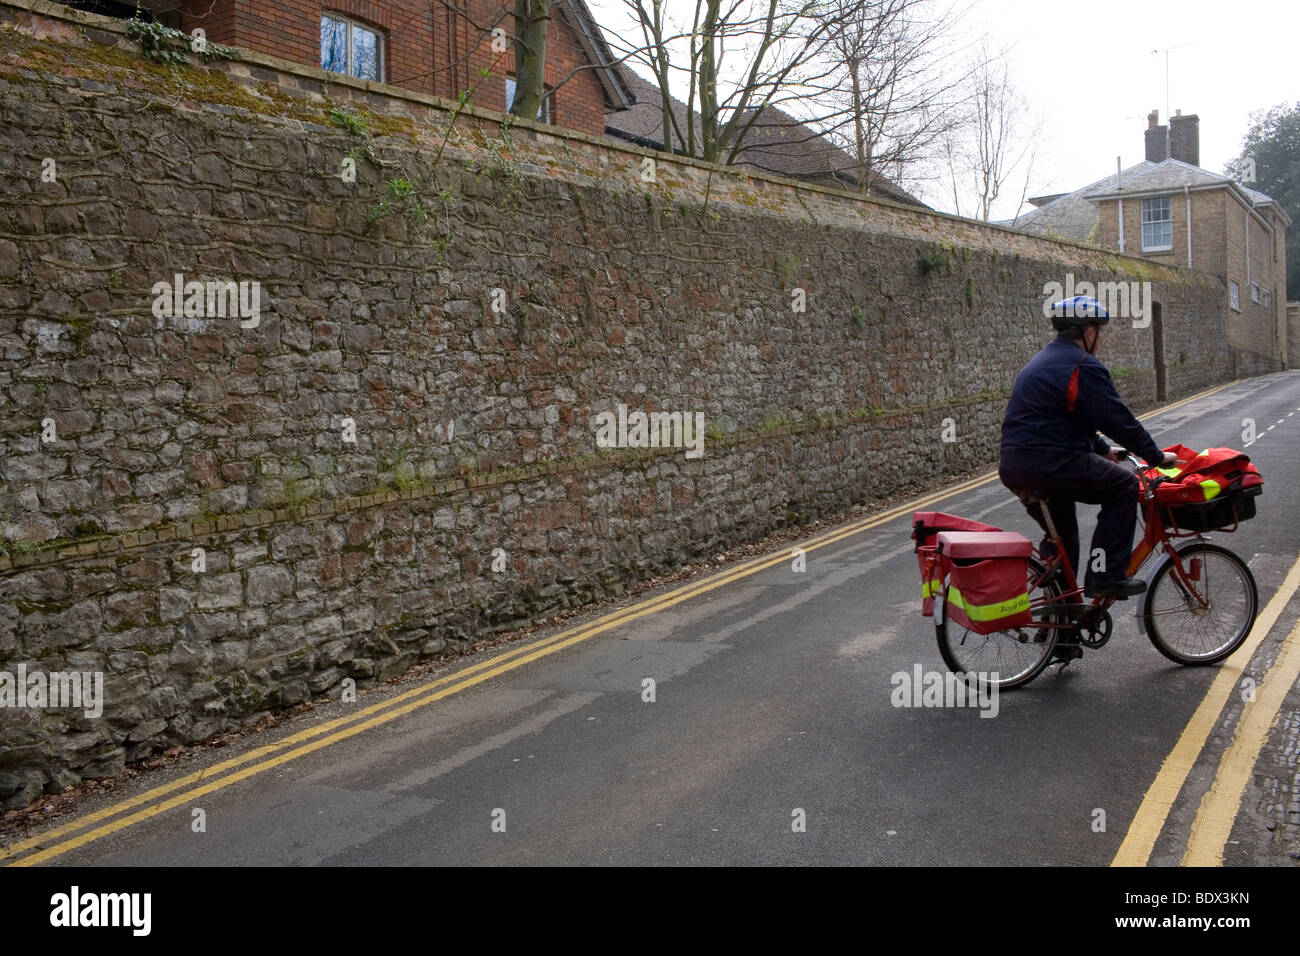 A postman wearing a helmet on a bicycle rides up a country lane to deliver the mail. - Stock Image